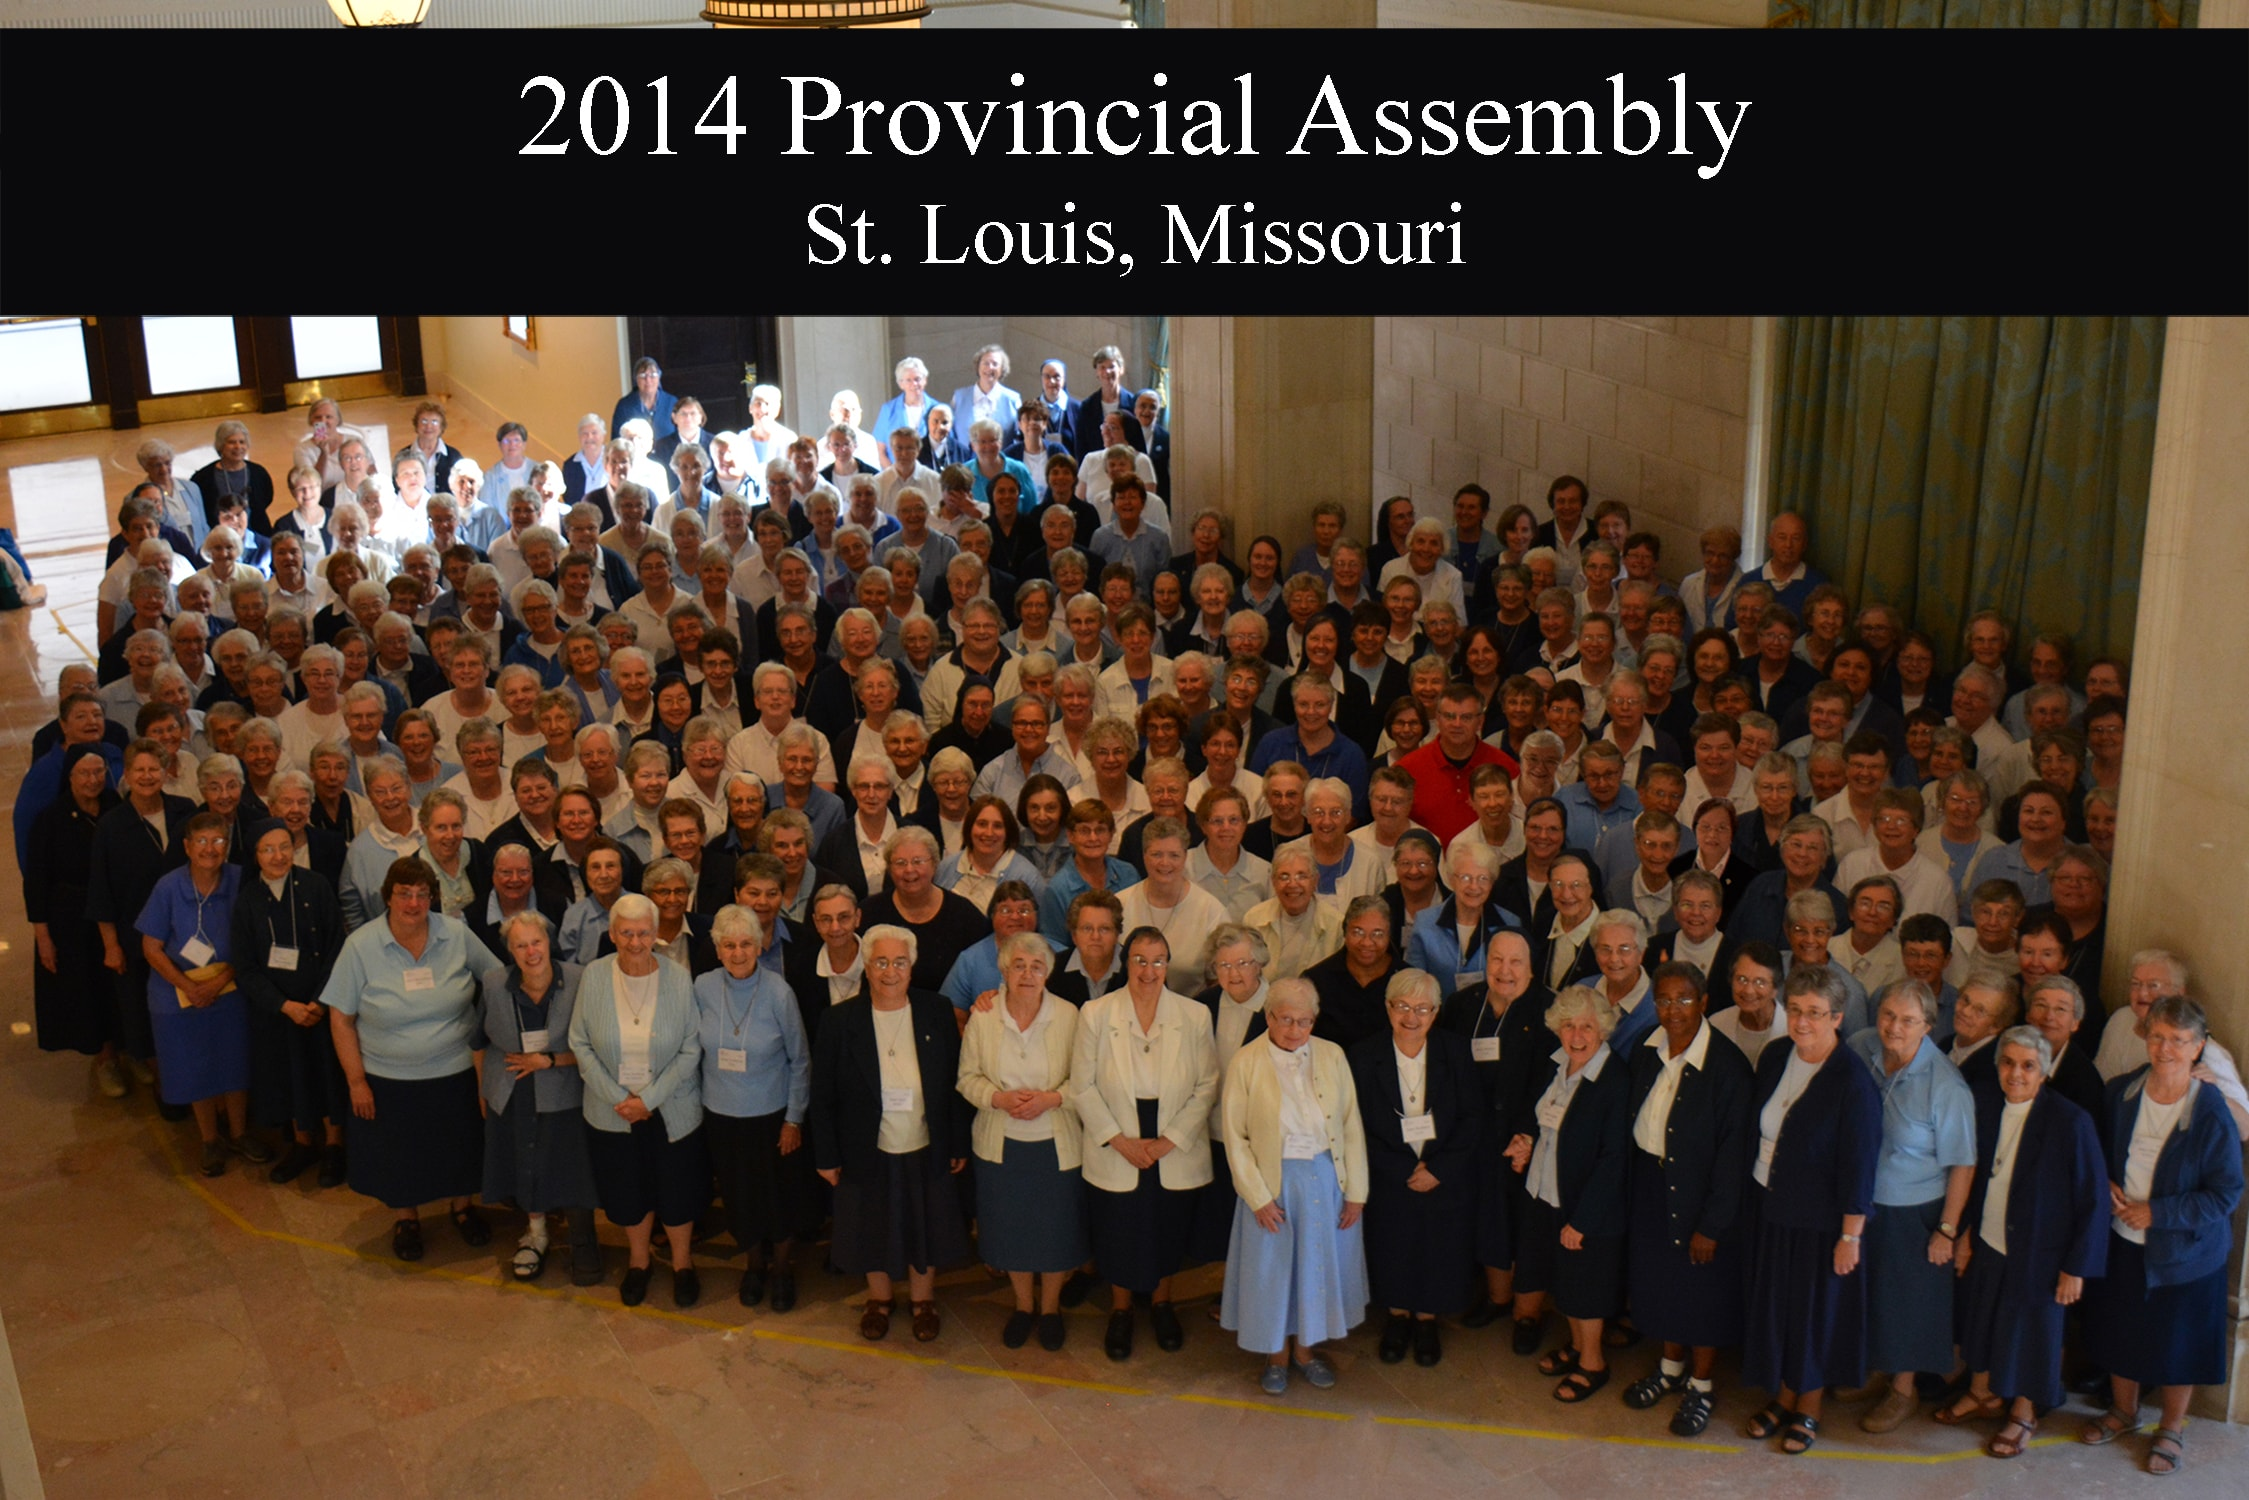 2014 Provincial Assembly